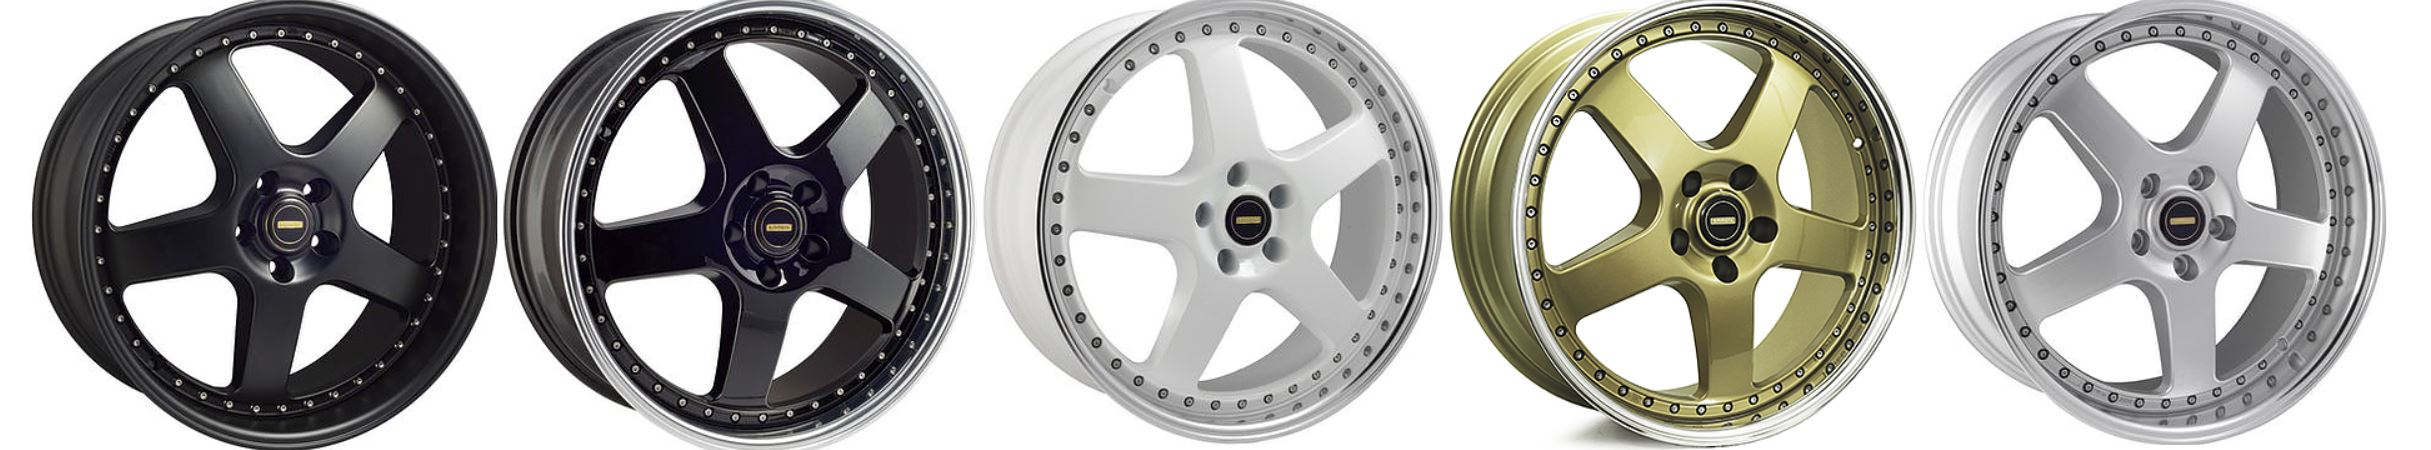 22X8.5 & 22X9.5 SIMMONS FR-1 WHEEL PACKAGE